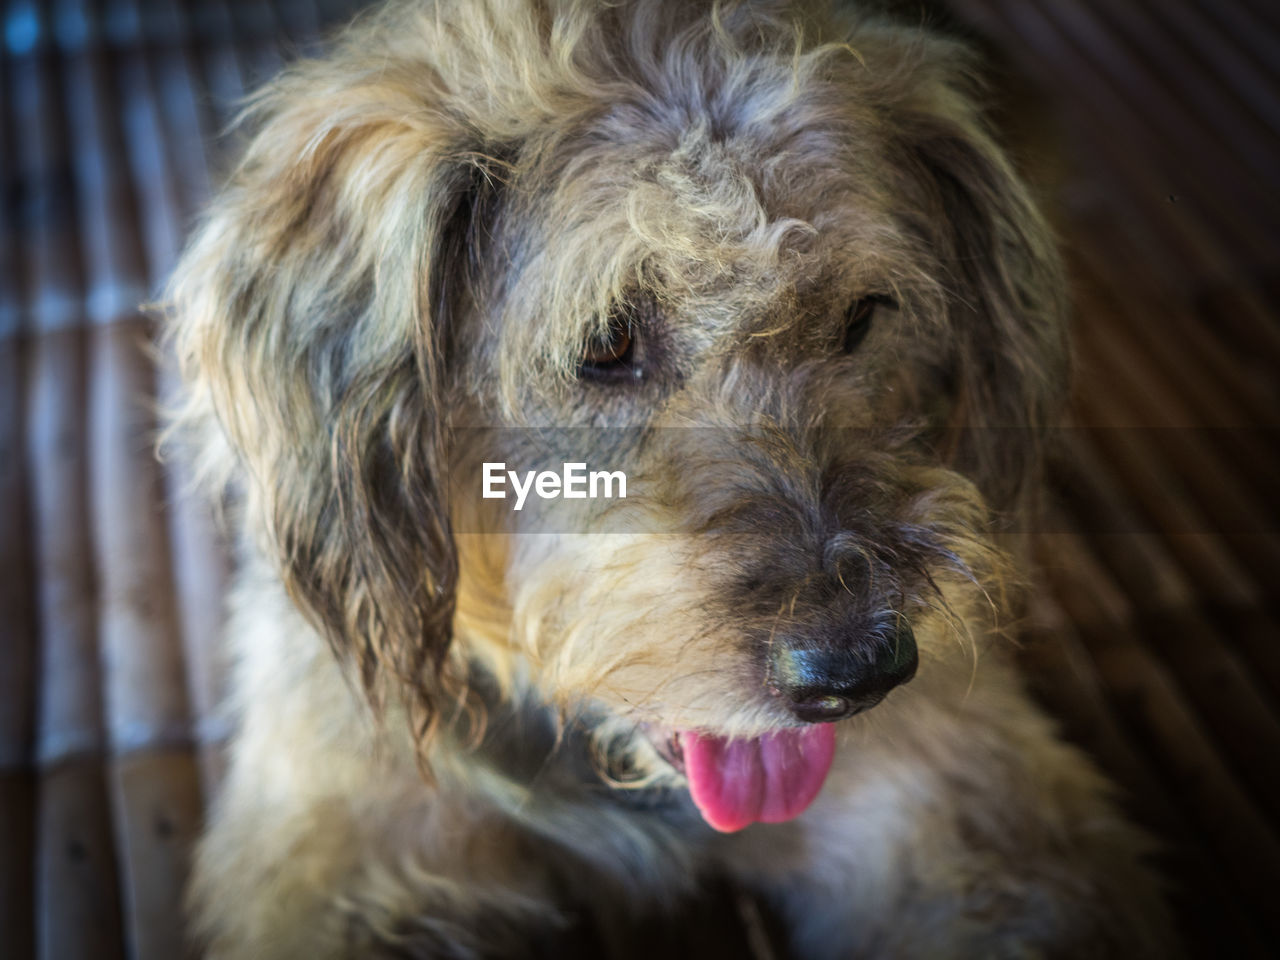 one animal, domestic, pets, mammal, animal themes, animal, domestic animals, canine, dog, vertebrate, close-up, animal body part, focus on foreground, brown, indoors, animal head, no people, animal hair, looking, portrait, animal tongue, snout, animal mouth